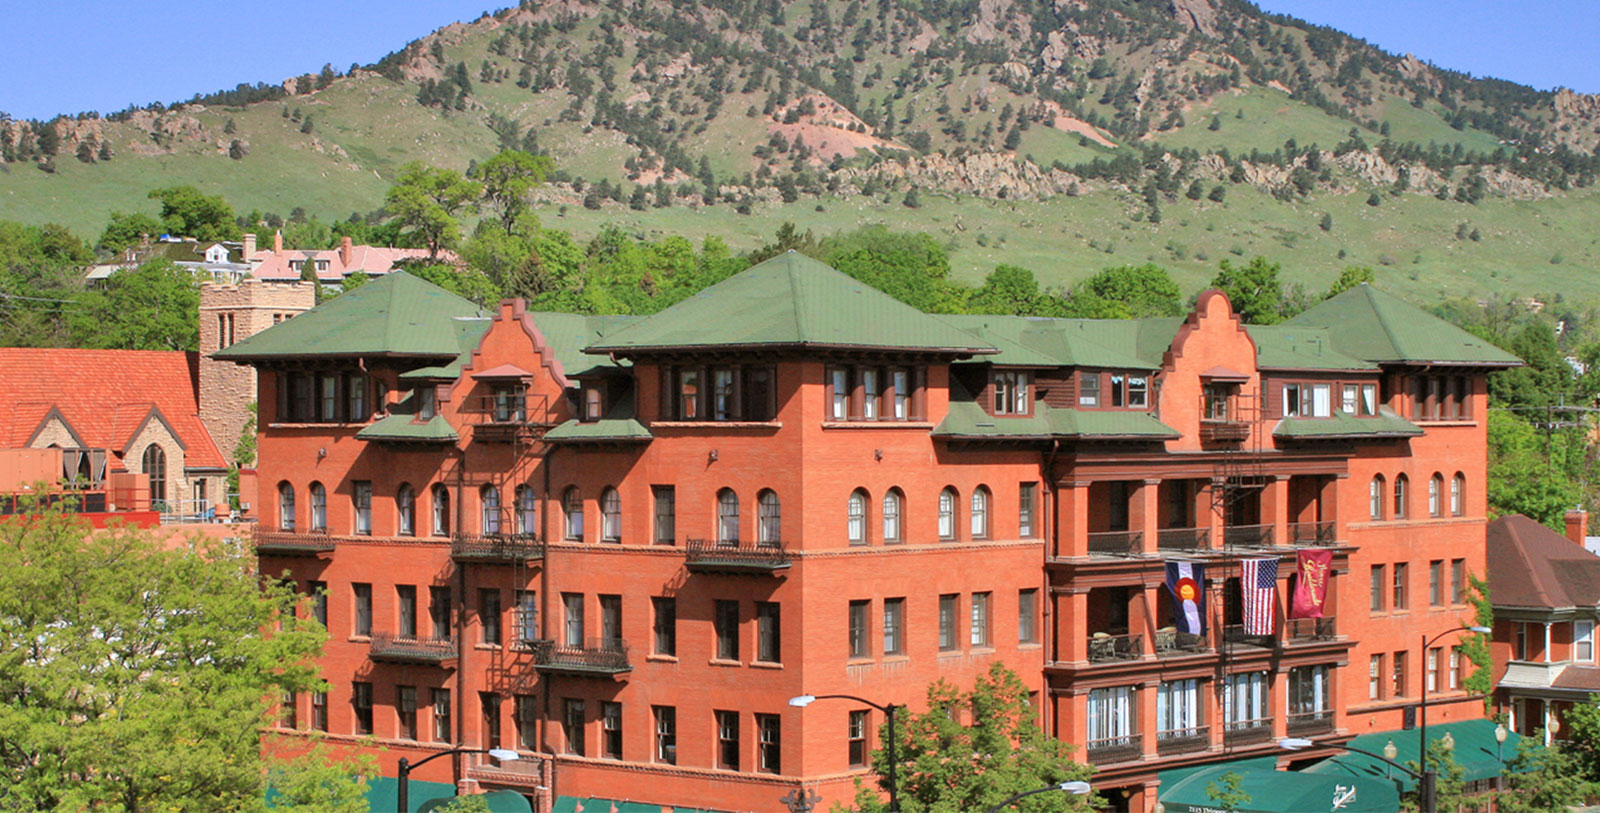 Image of Hotel Exterior, Hotel Boulderado in Boulder, Colorado, 1909, Member of Historic Hotels of America, Special Offers, Discounted Rates, Families, Romantic Escape, Honeymoons, Anniversaries, Reunions